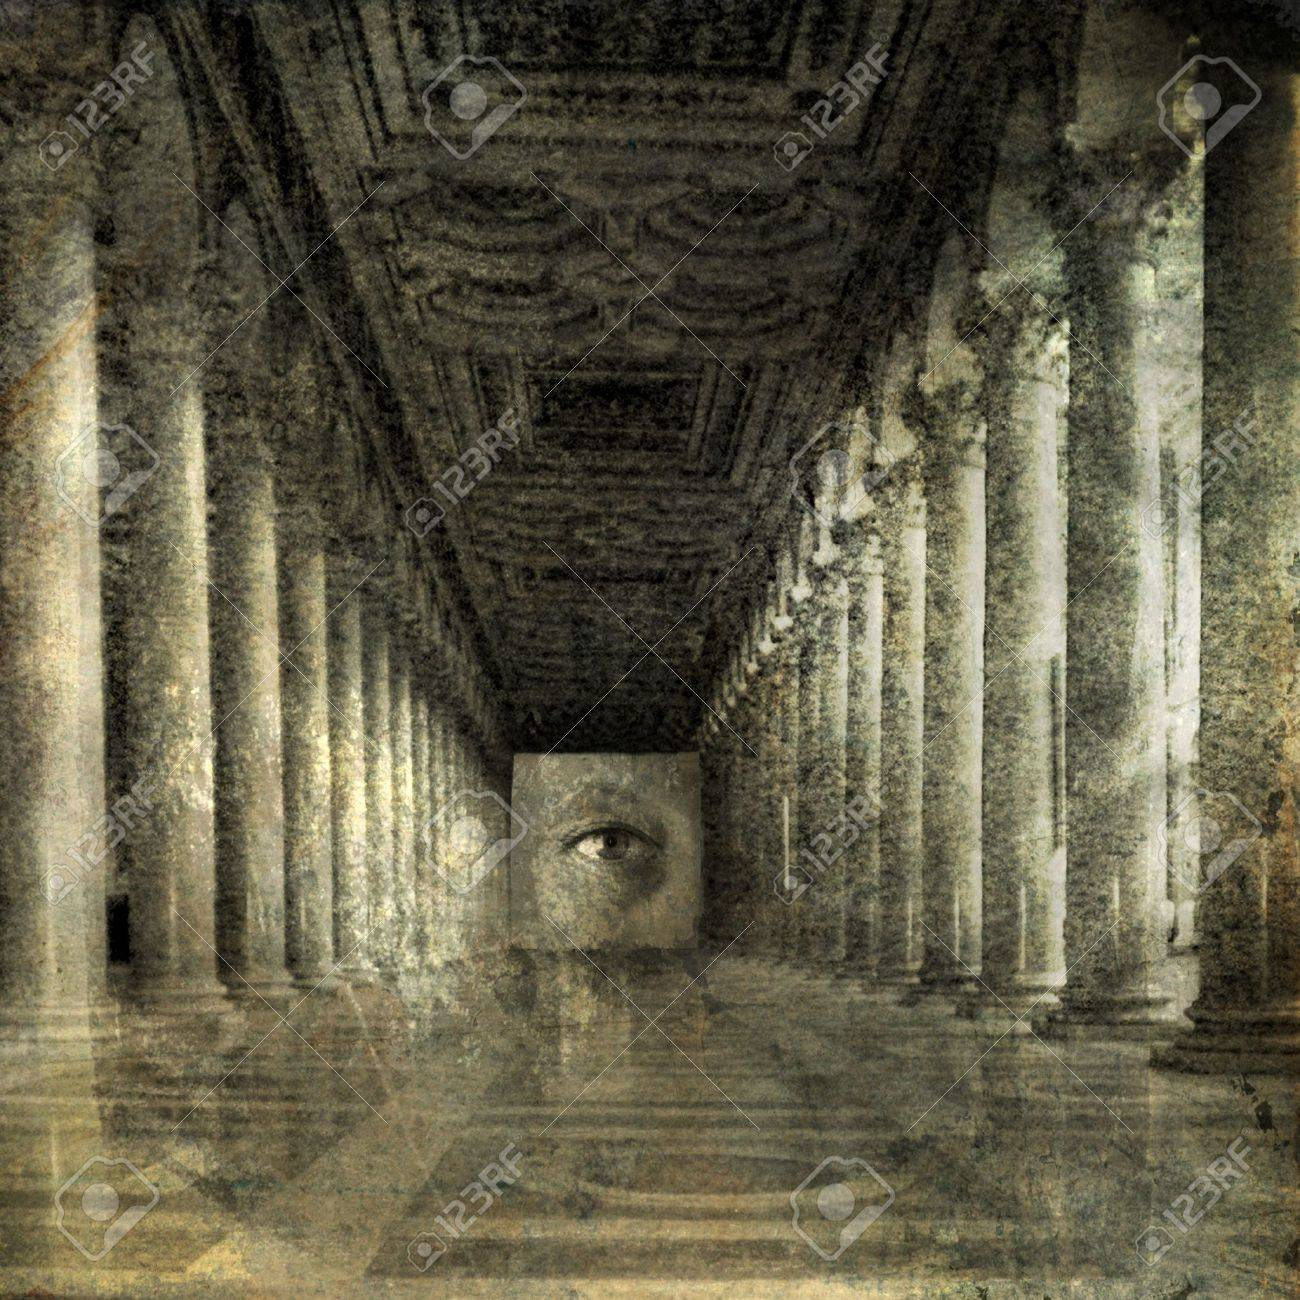 Eye at the end of Roman columns. Photo based illustration. - 5169128